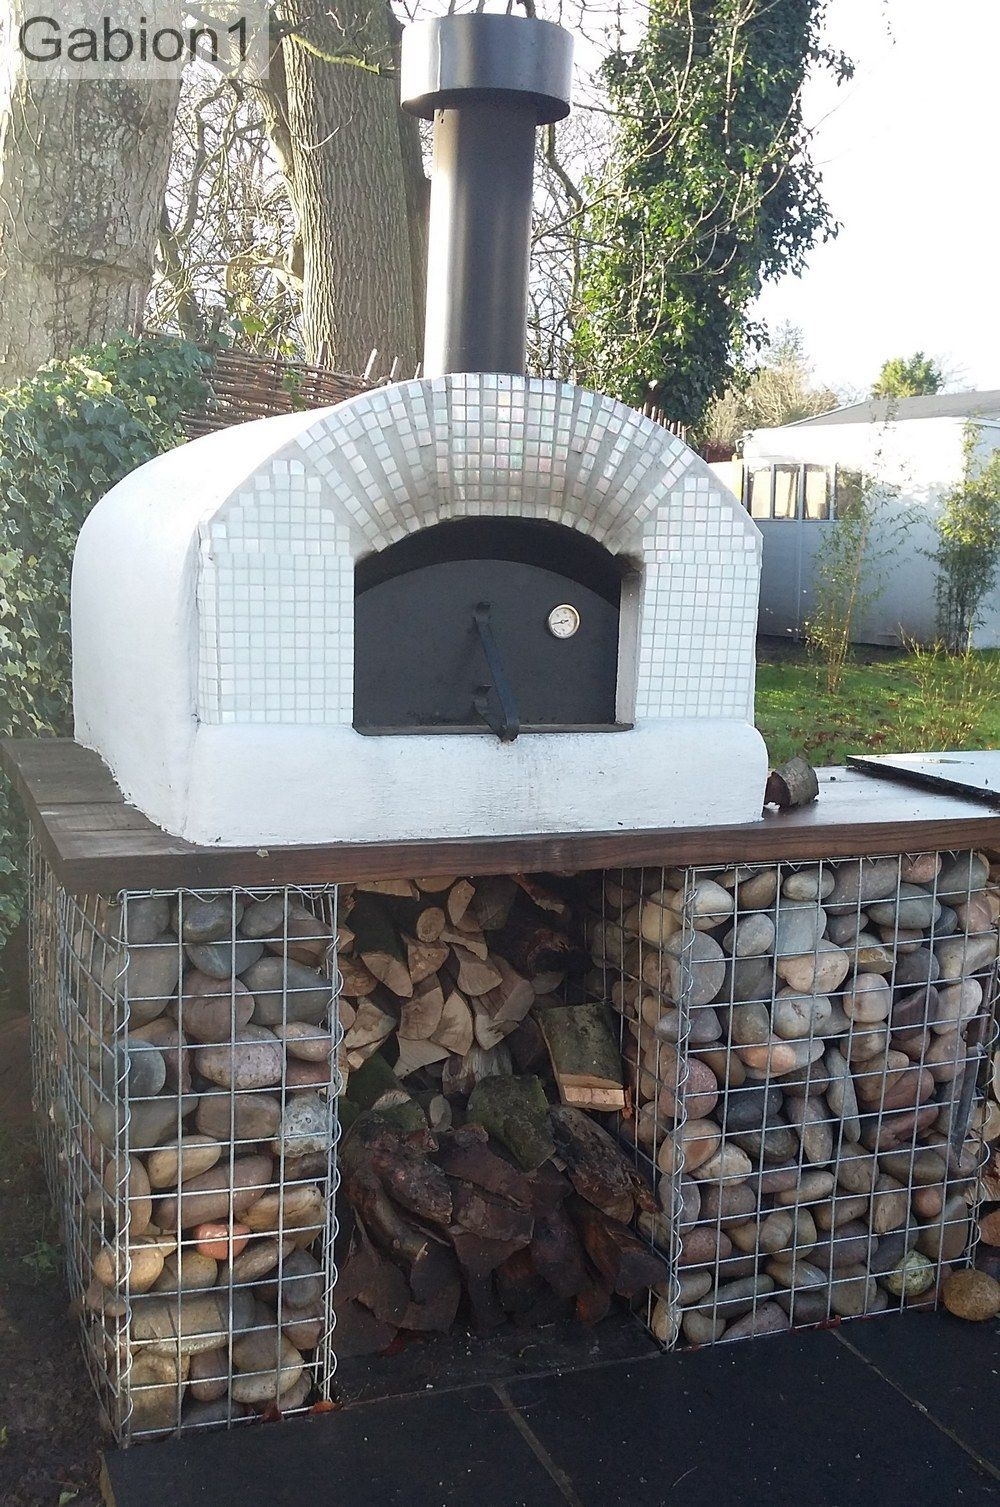 gabion supports for pizza oven built by Beautiful Spaces Wilts. http://www.gabion1.co.uk